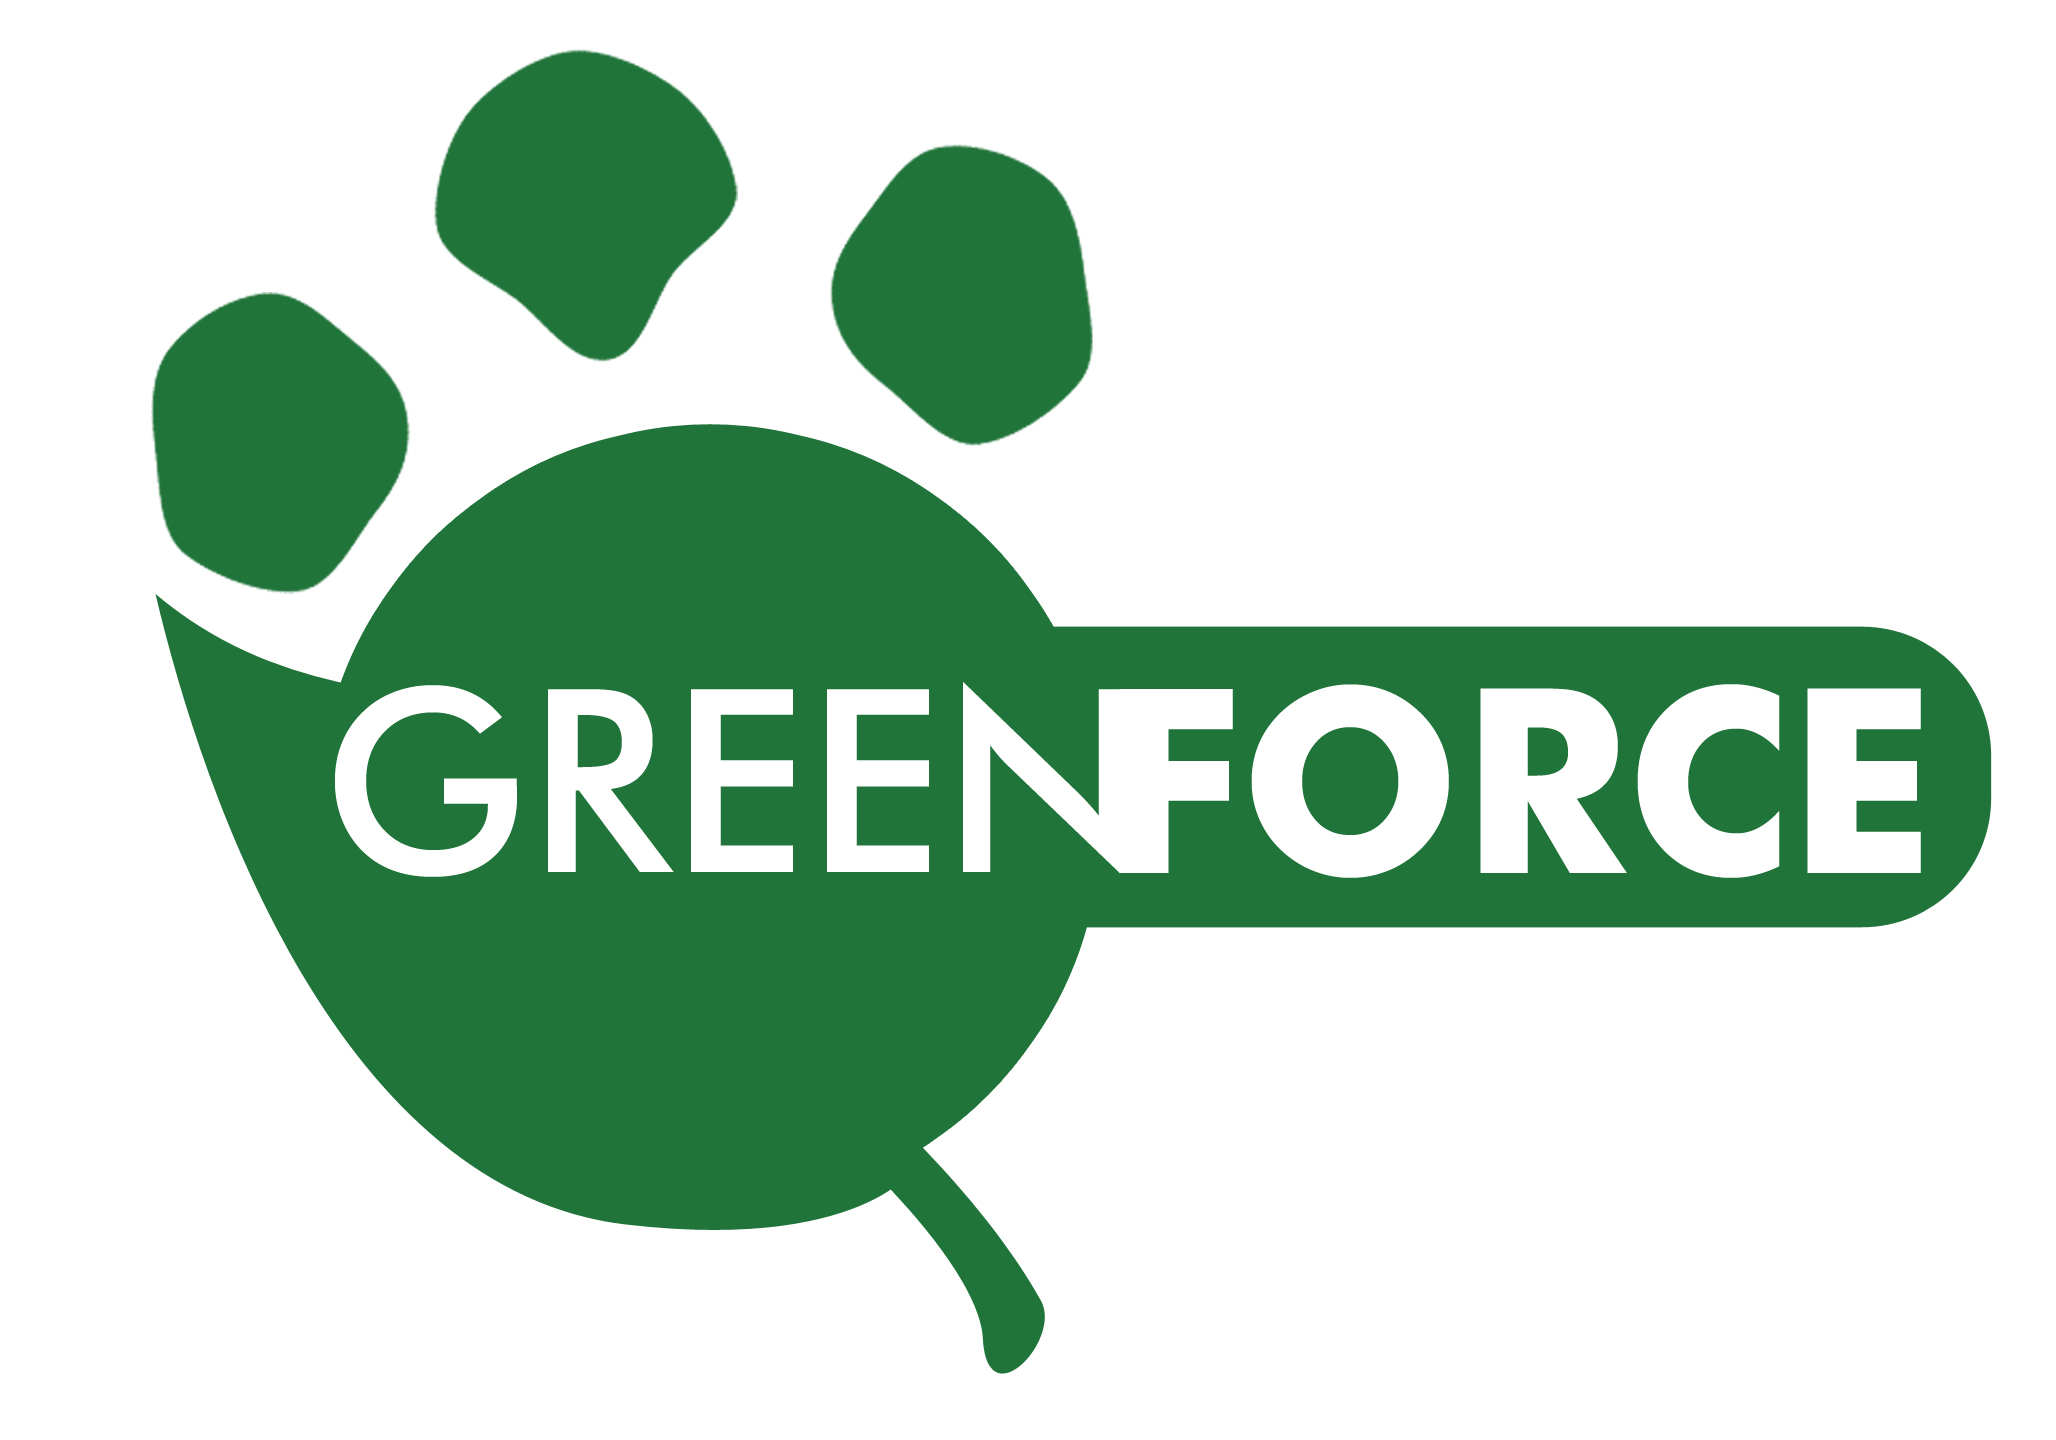 Environmental Friendly Green Force Concept